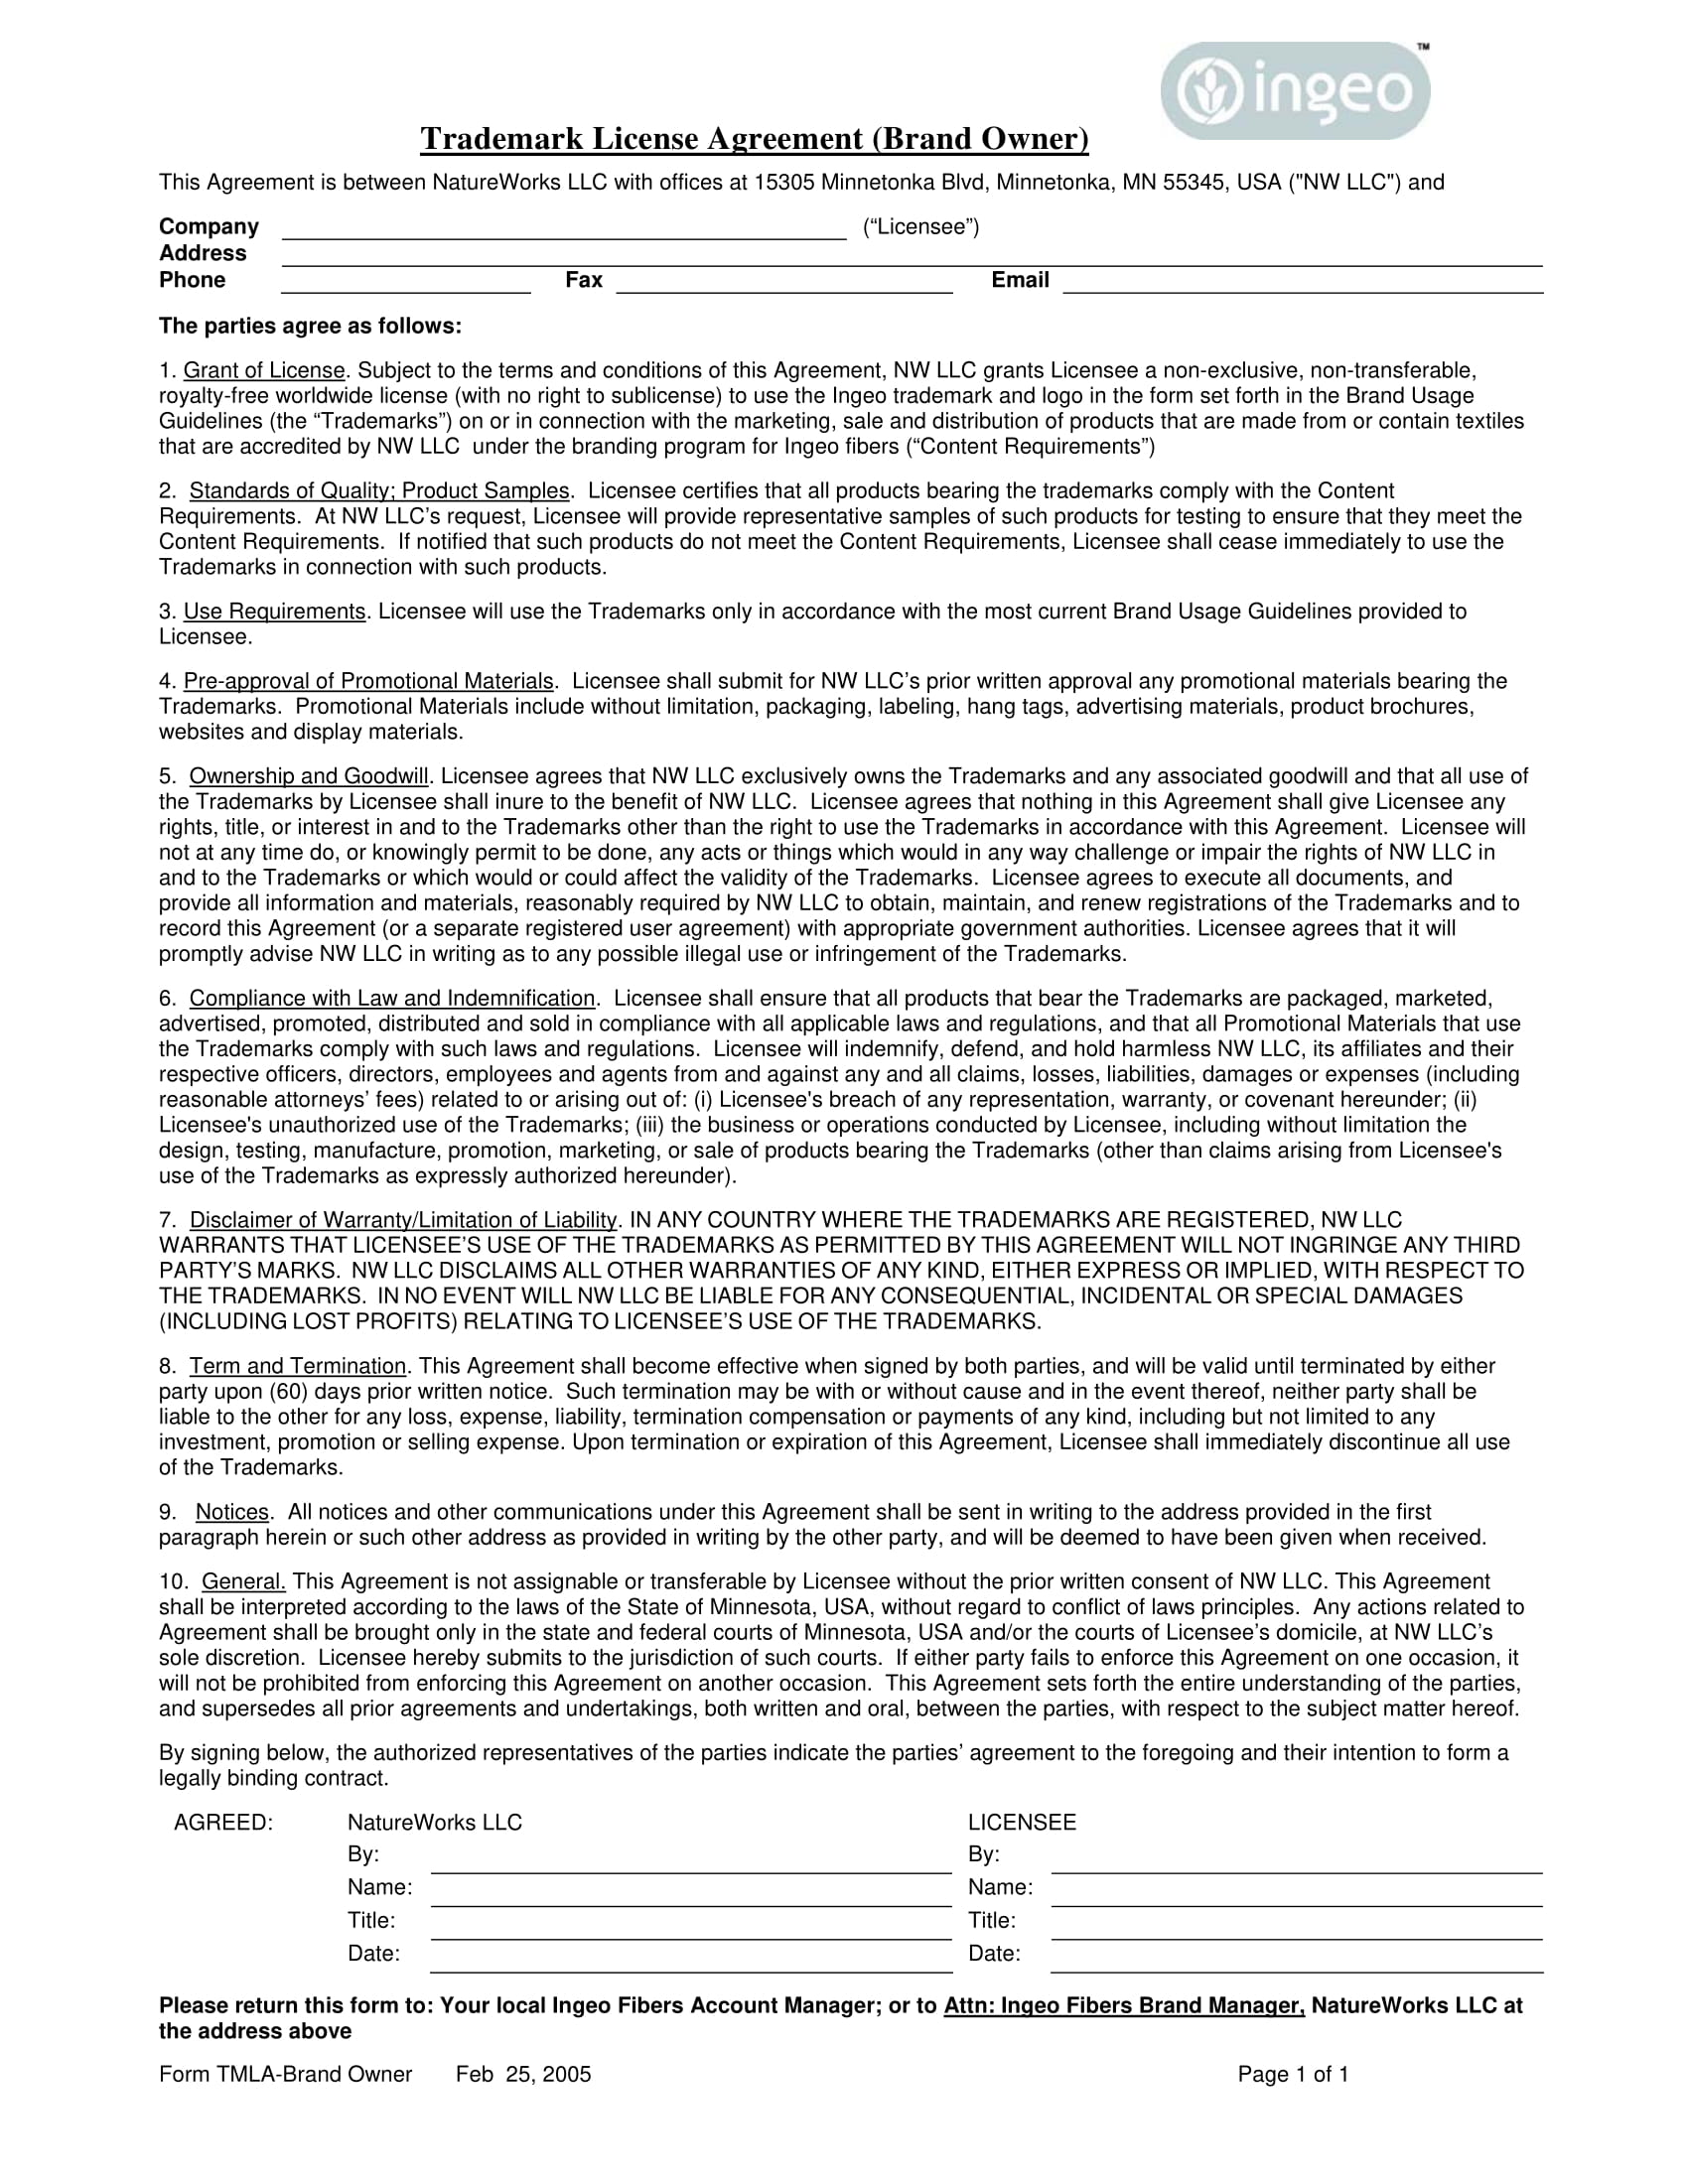 13 trademark license agreement forms pdf doc sample trademark license agreement platinumwayz